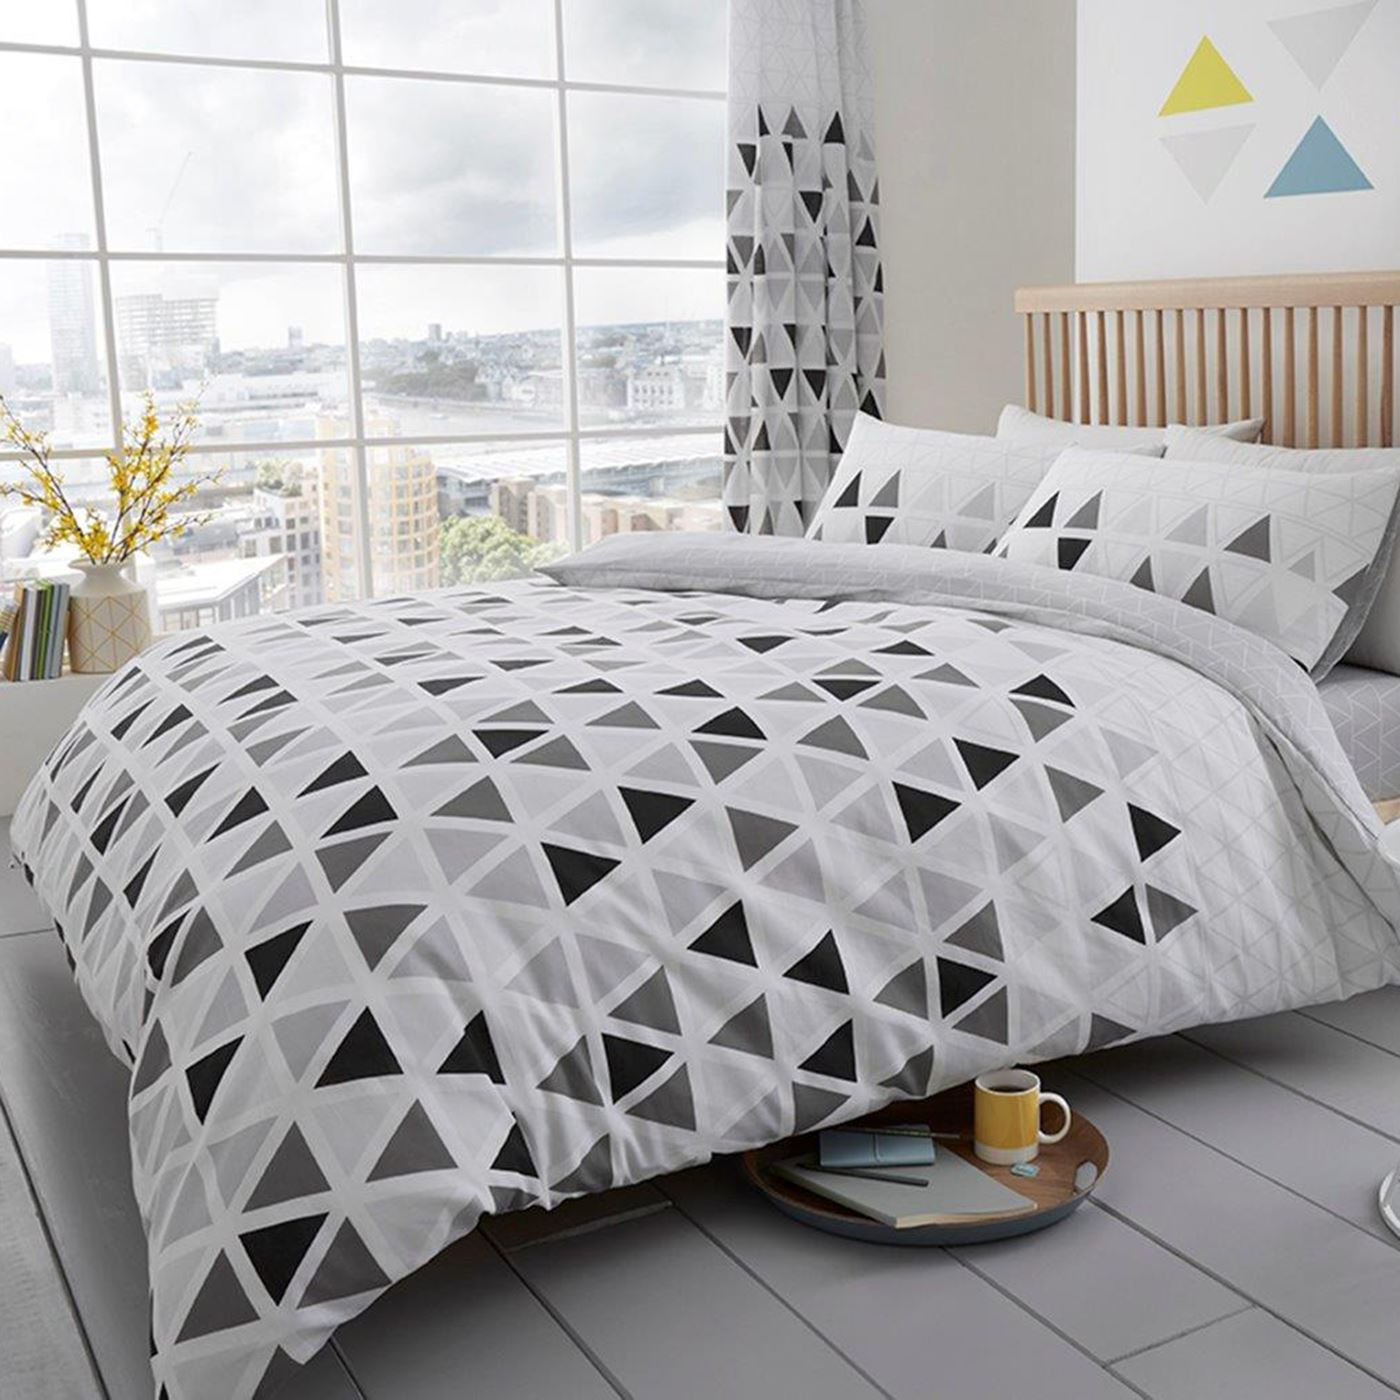 Geo Triangle King Size Duvet Cover Set Reversible Geometric Bedding Grey 5051346147602 Ebay